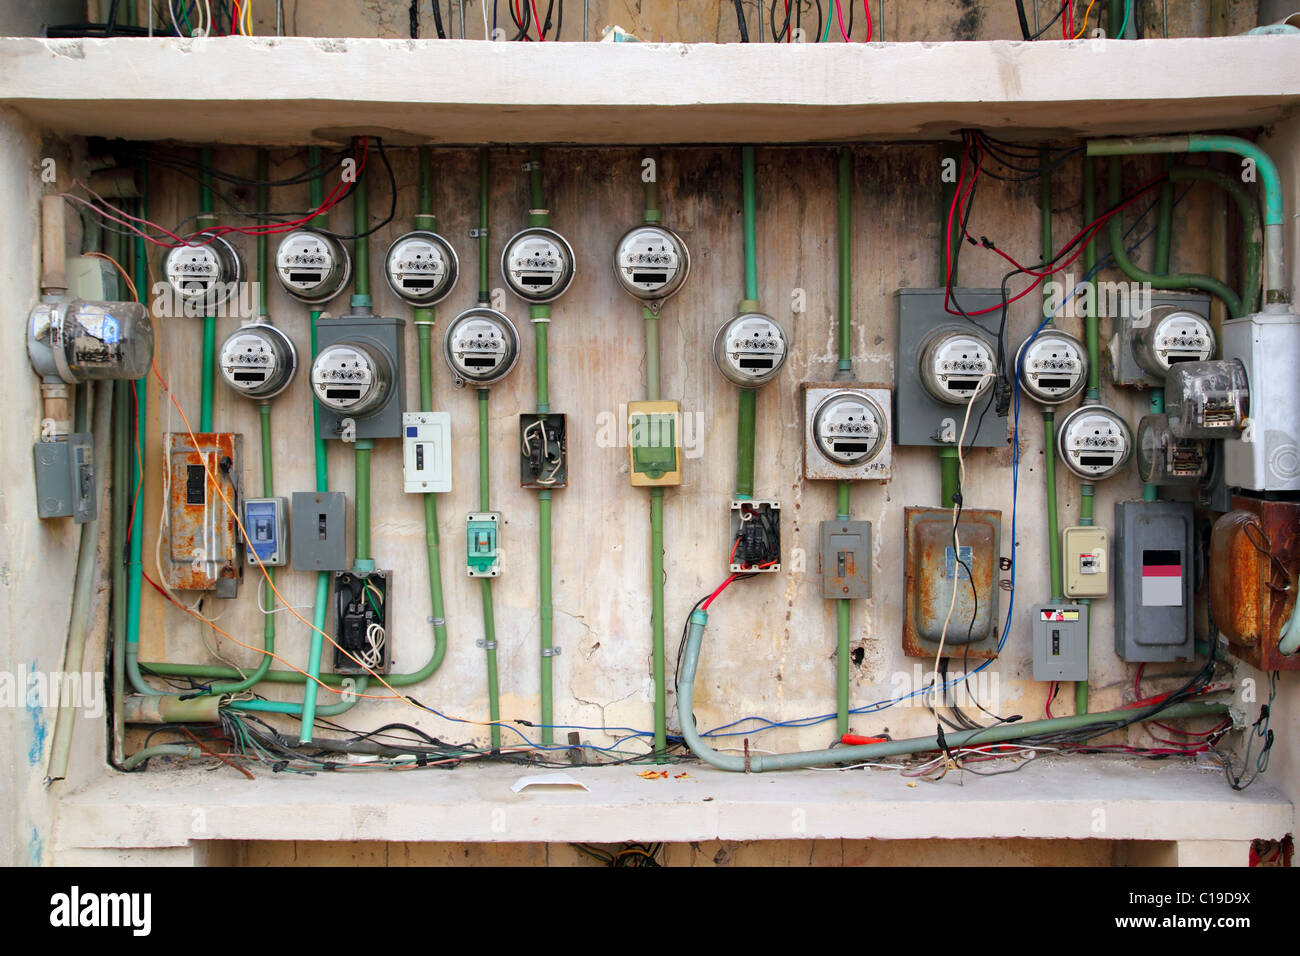 Dangerous Electrical Wiring Stock Photos Amp Dangerous